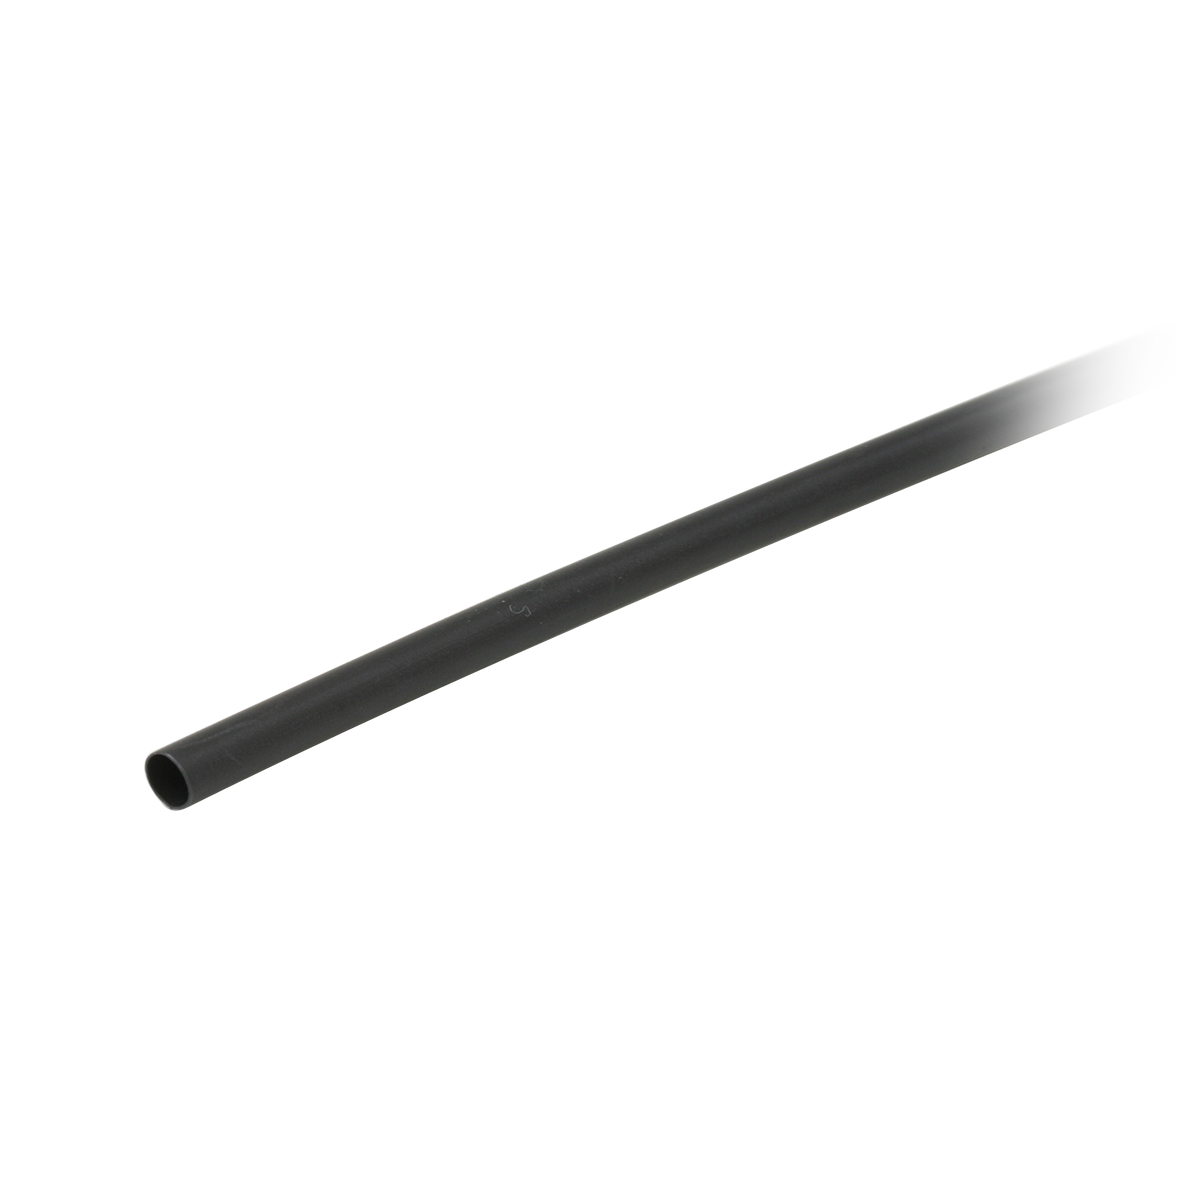 Black Polyolefin Heat Shrink Tubing